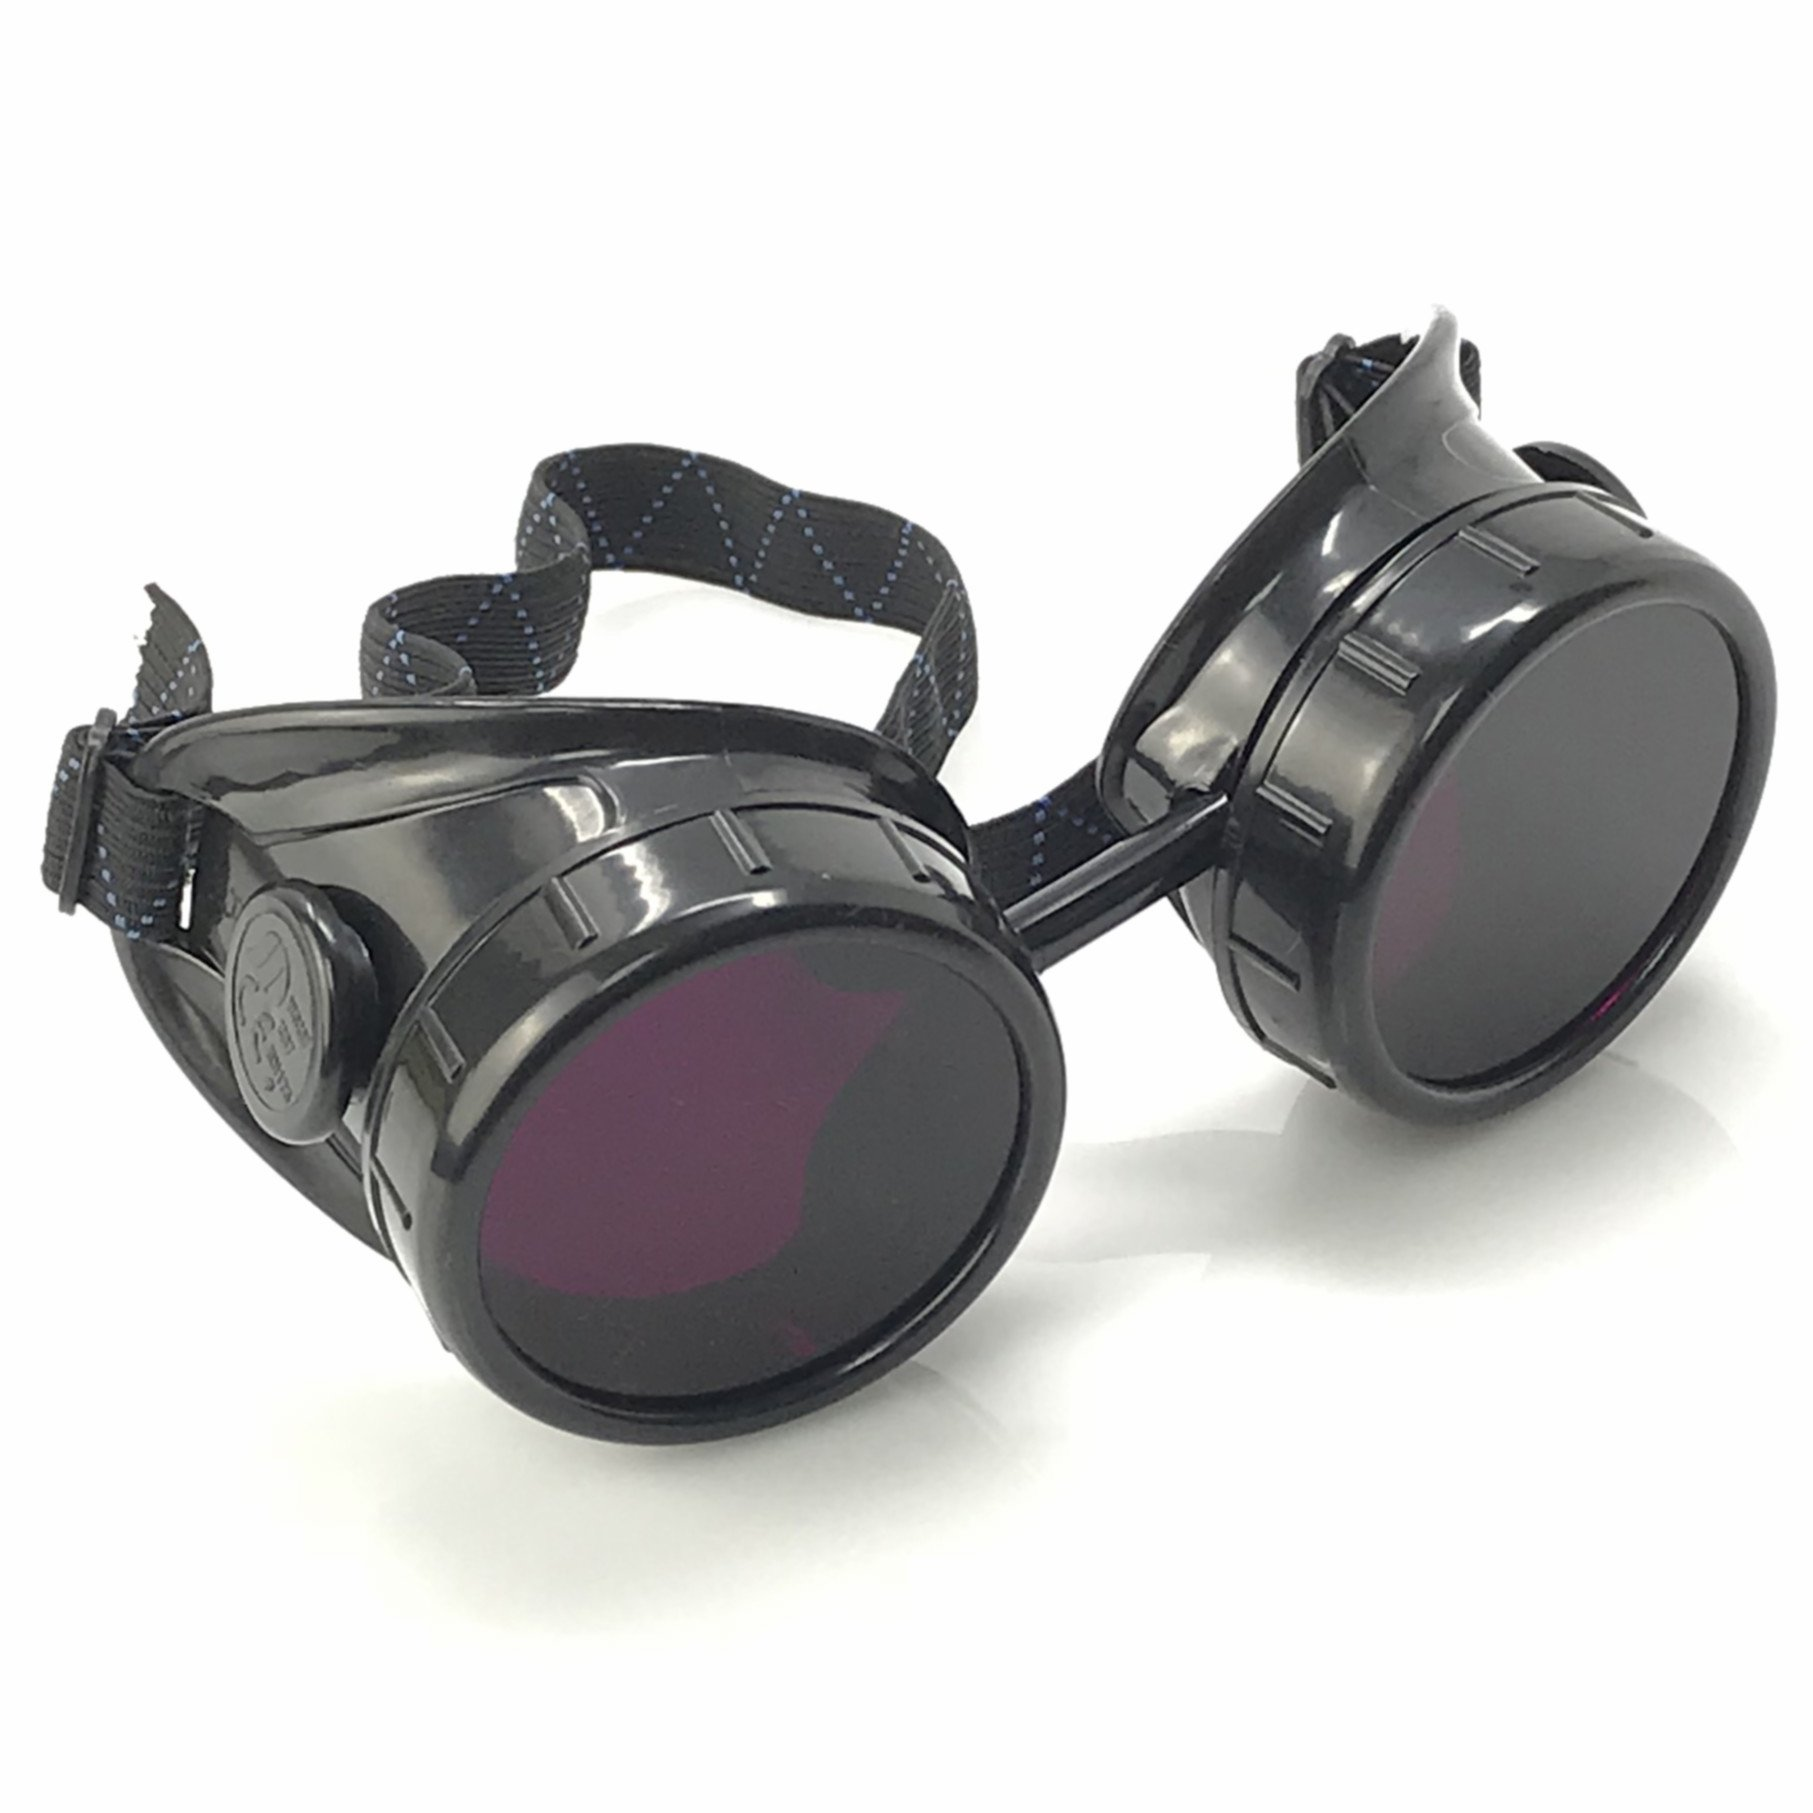 umbrellalaboratory Steampunk Victorian Goggles Welding Glasses Industrial Look Sleek and Stylish by umbrellalaboratory